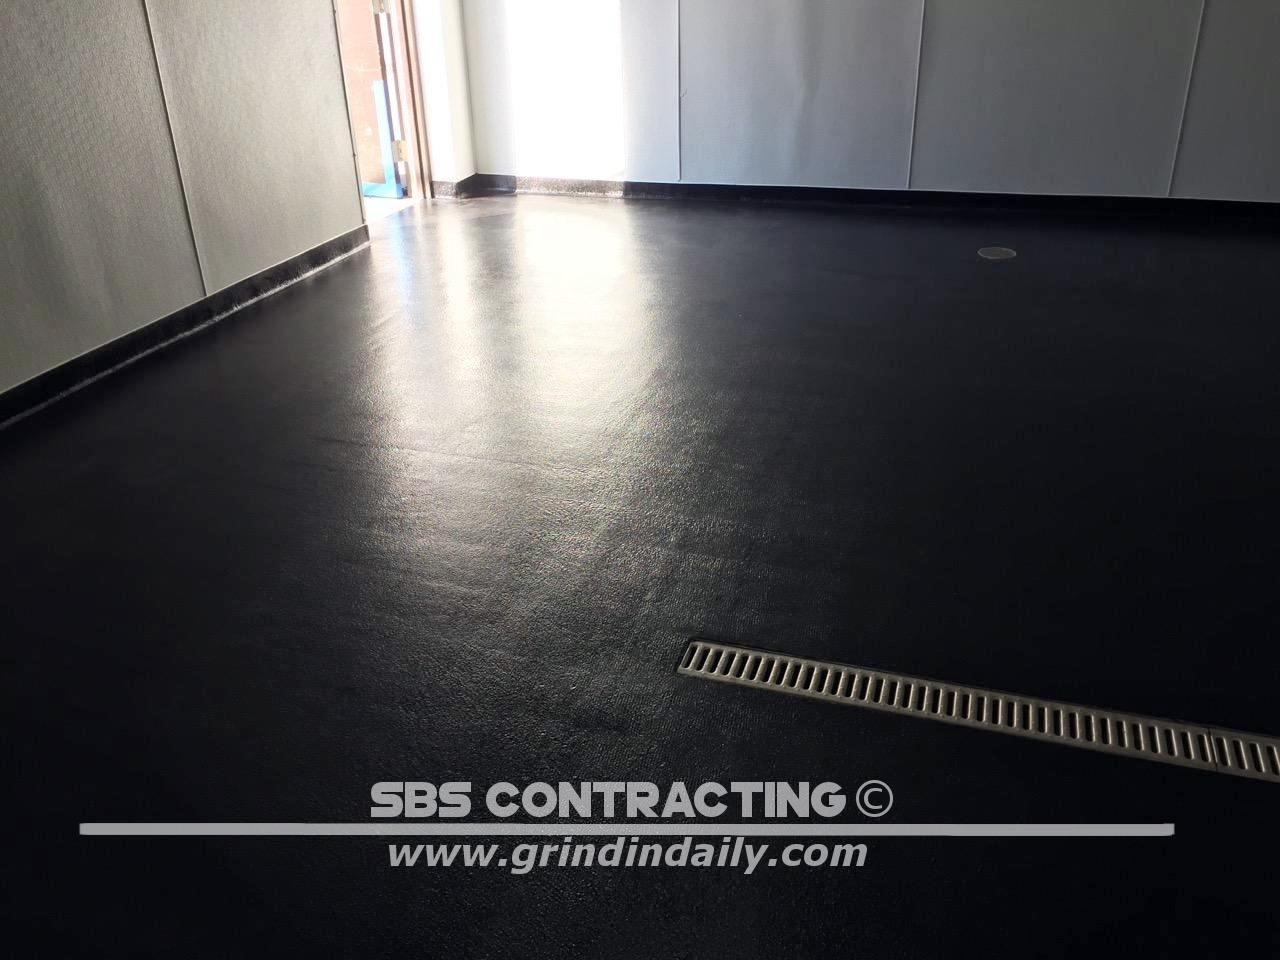 SBS-Contracting-Broadcast-Project-02-01